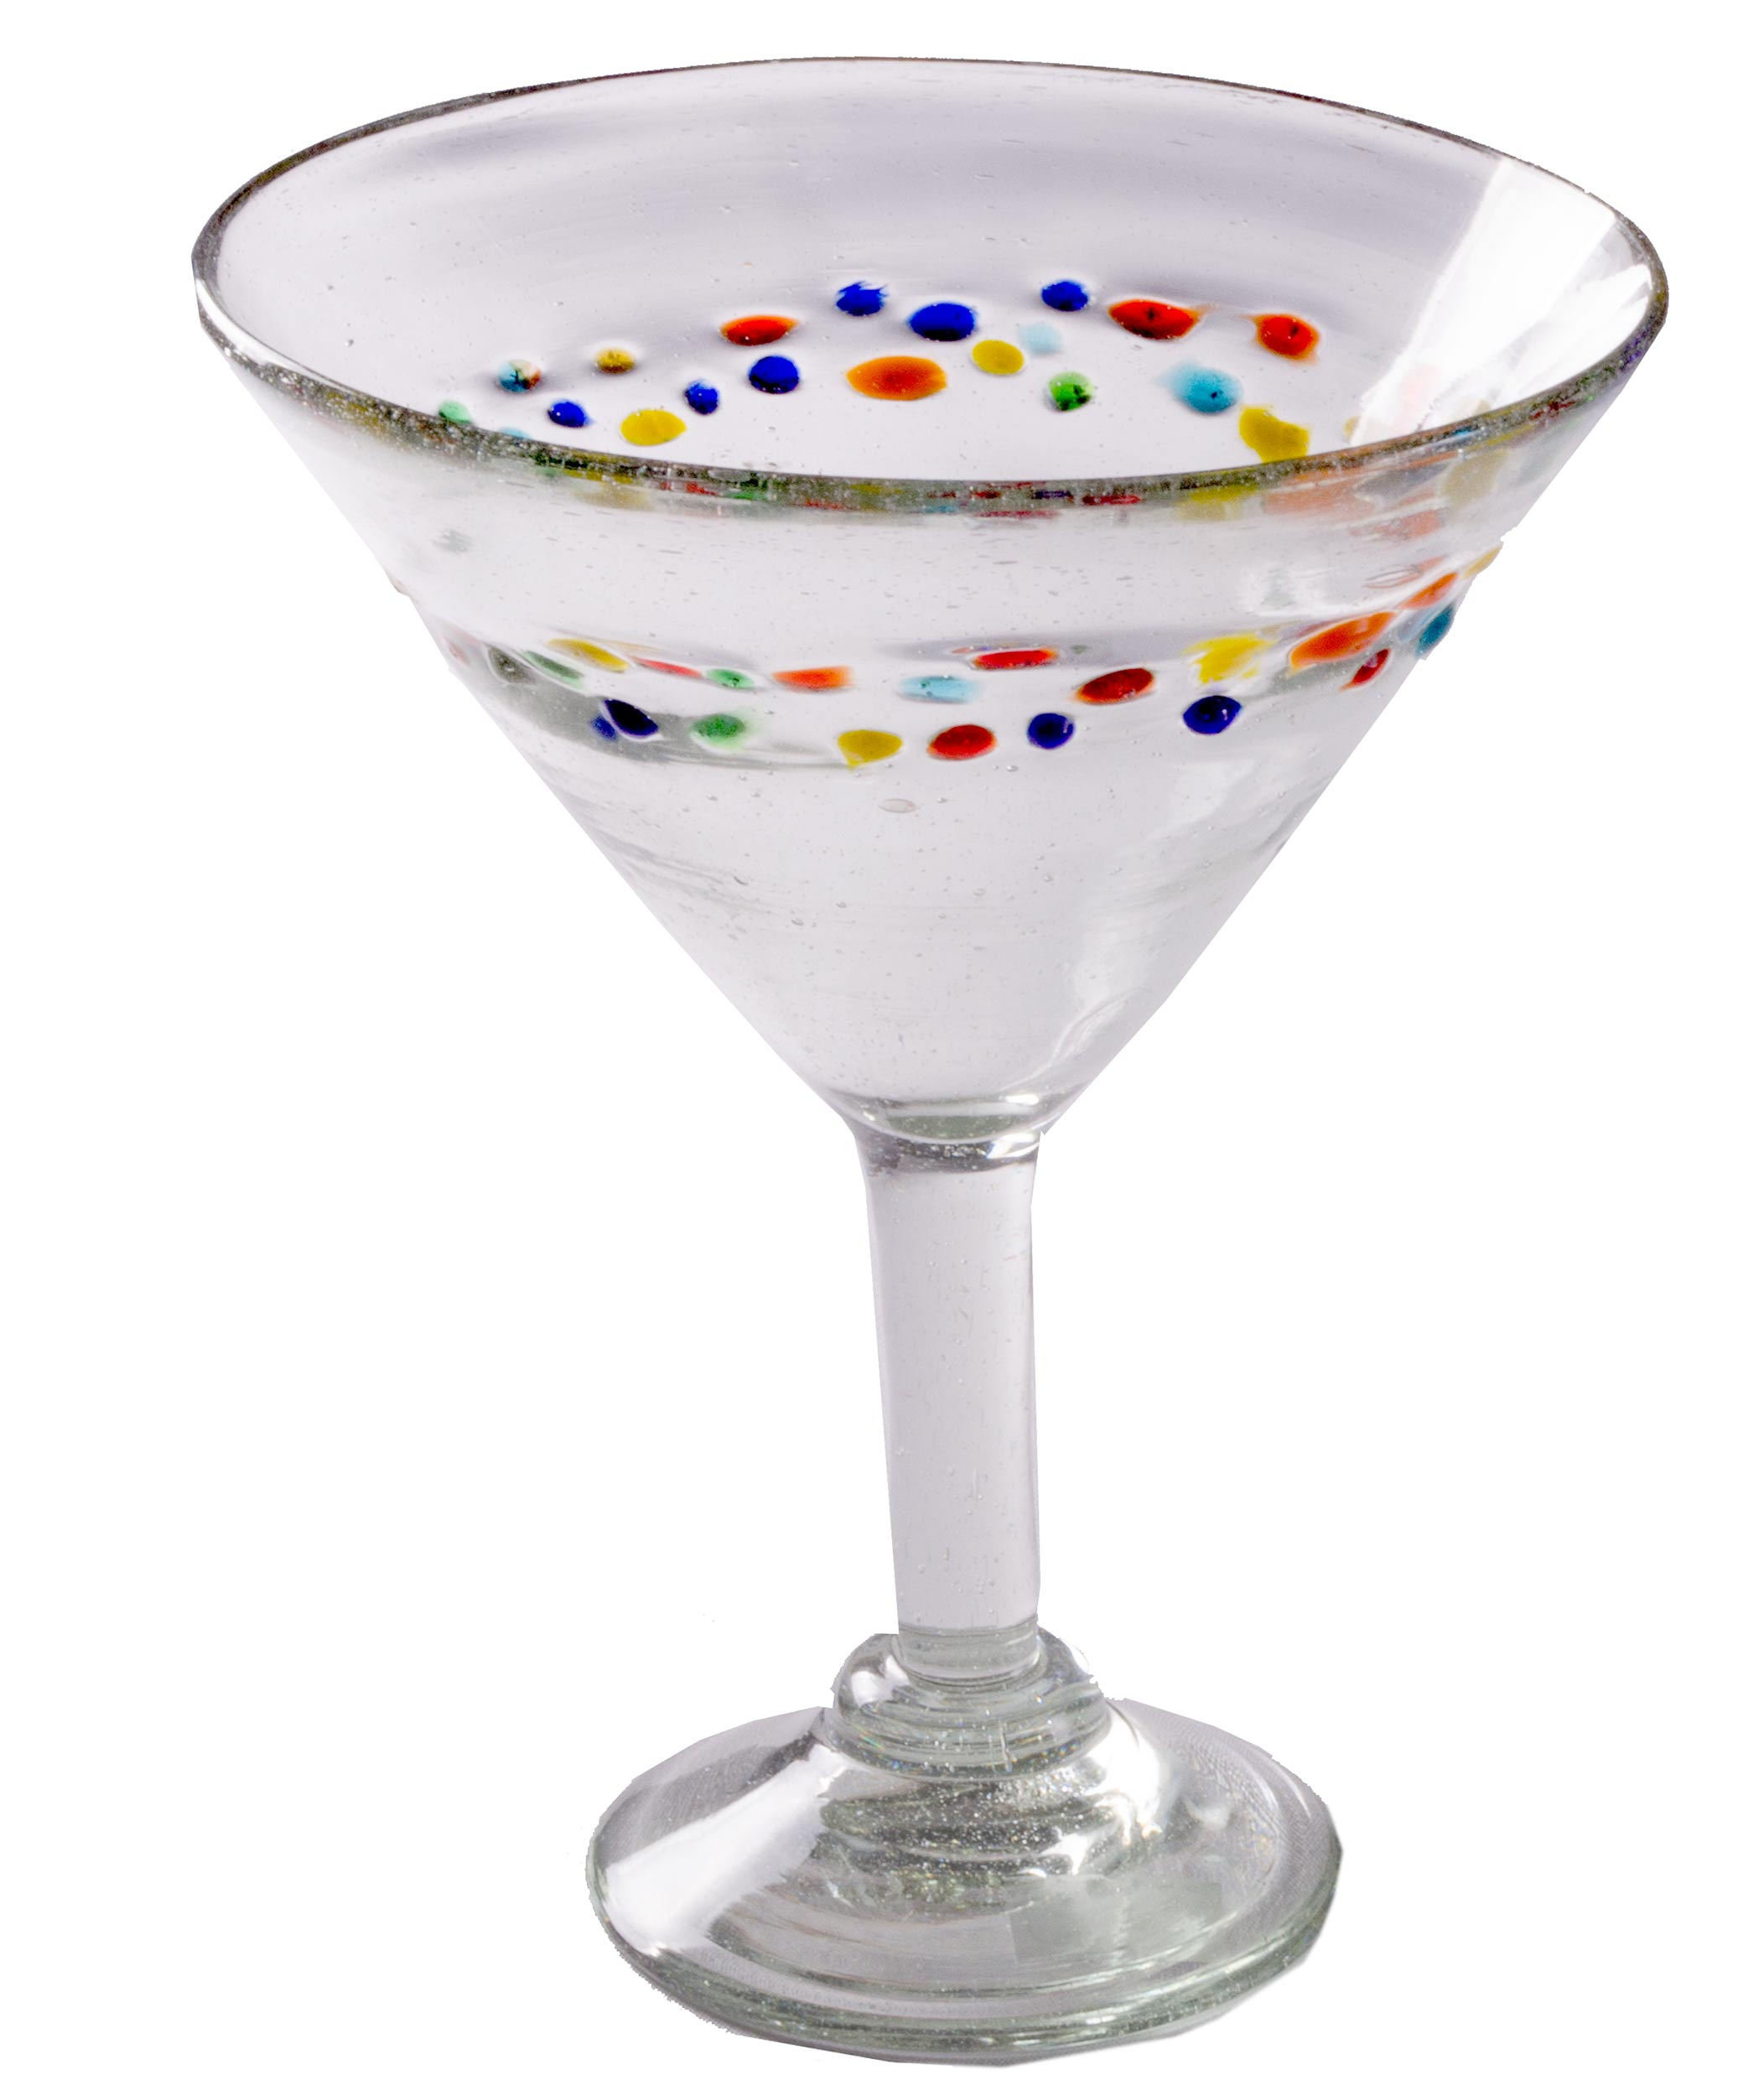 Orion Tutti Frutti 15 oz Classic Margarita - Set of 4 - Orion's Table Mexican Glassware